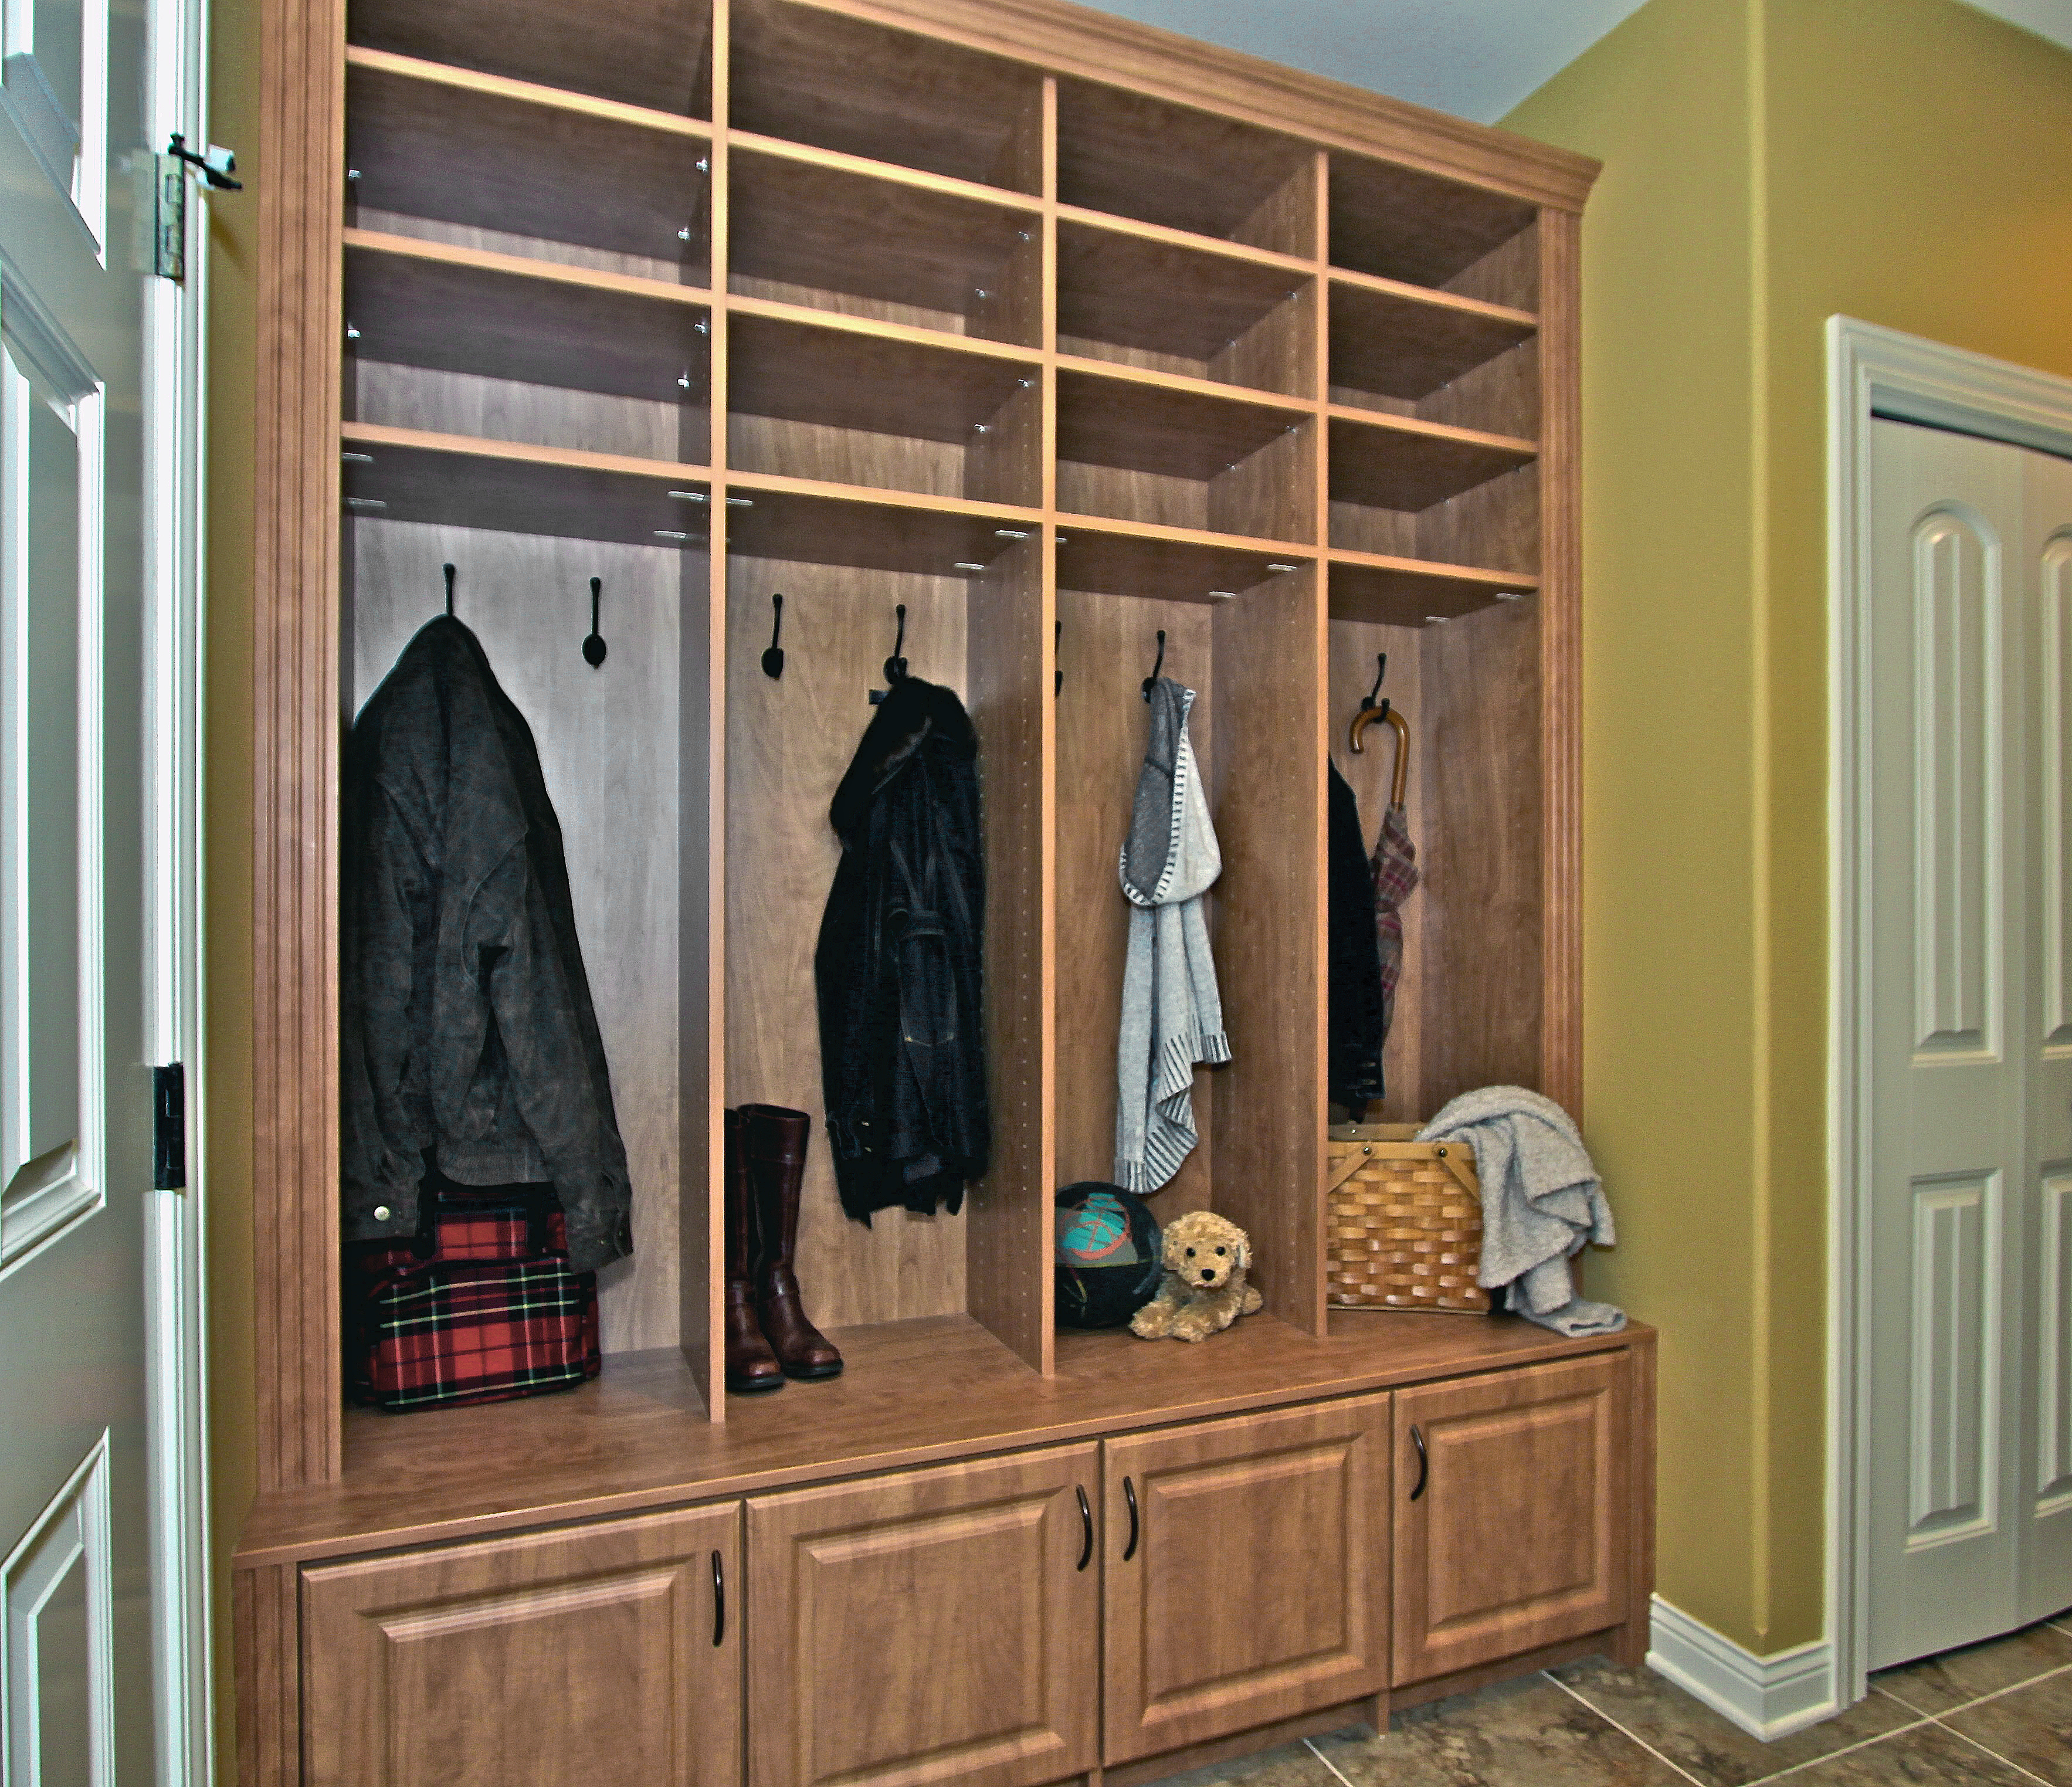 Knoxville Home Organization For Laundry Rooms Pantries